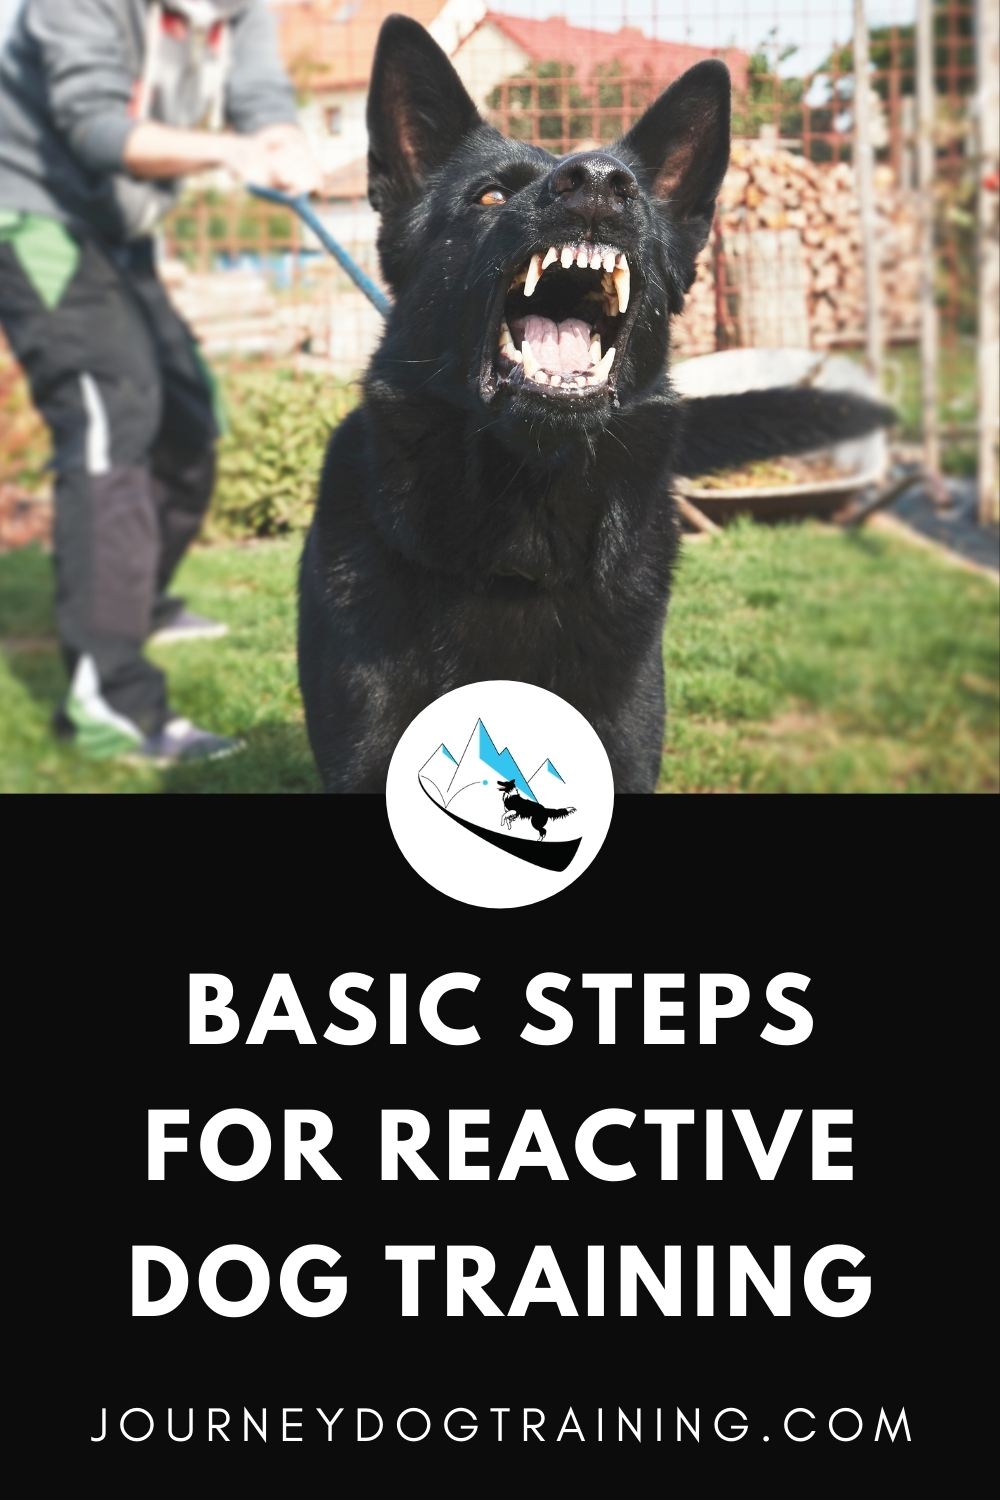 Basic steps for reactive dog training | journeydogtraining.com